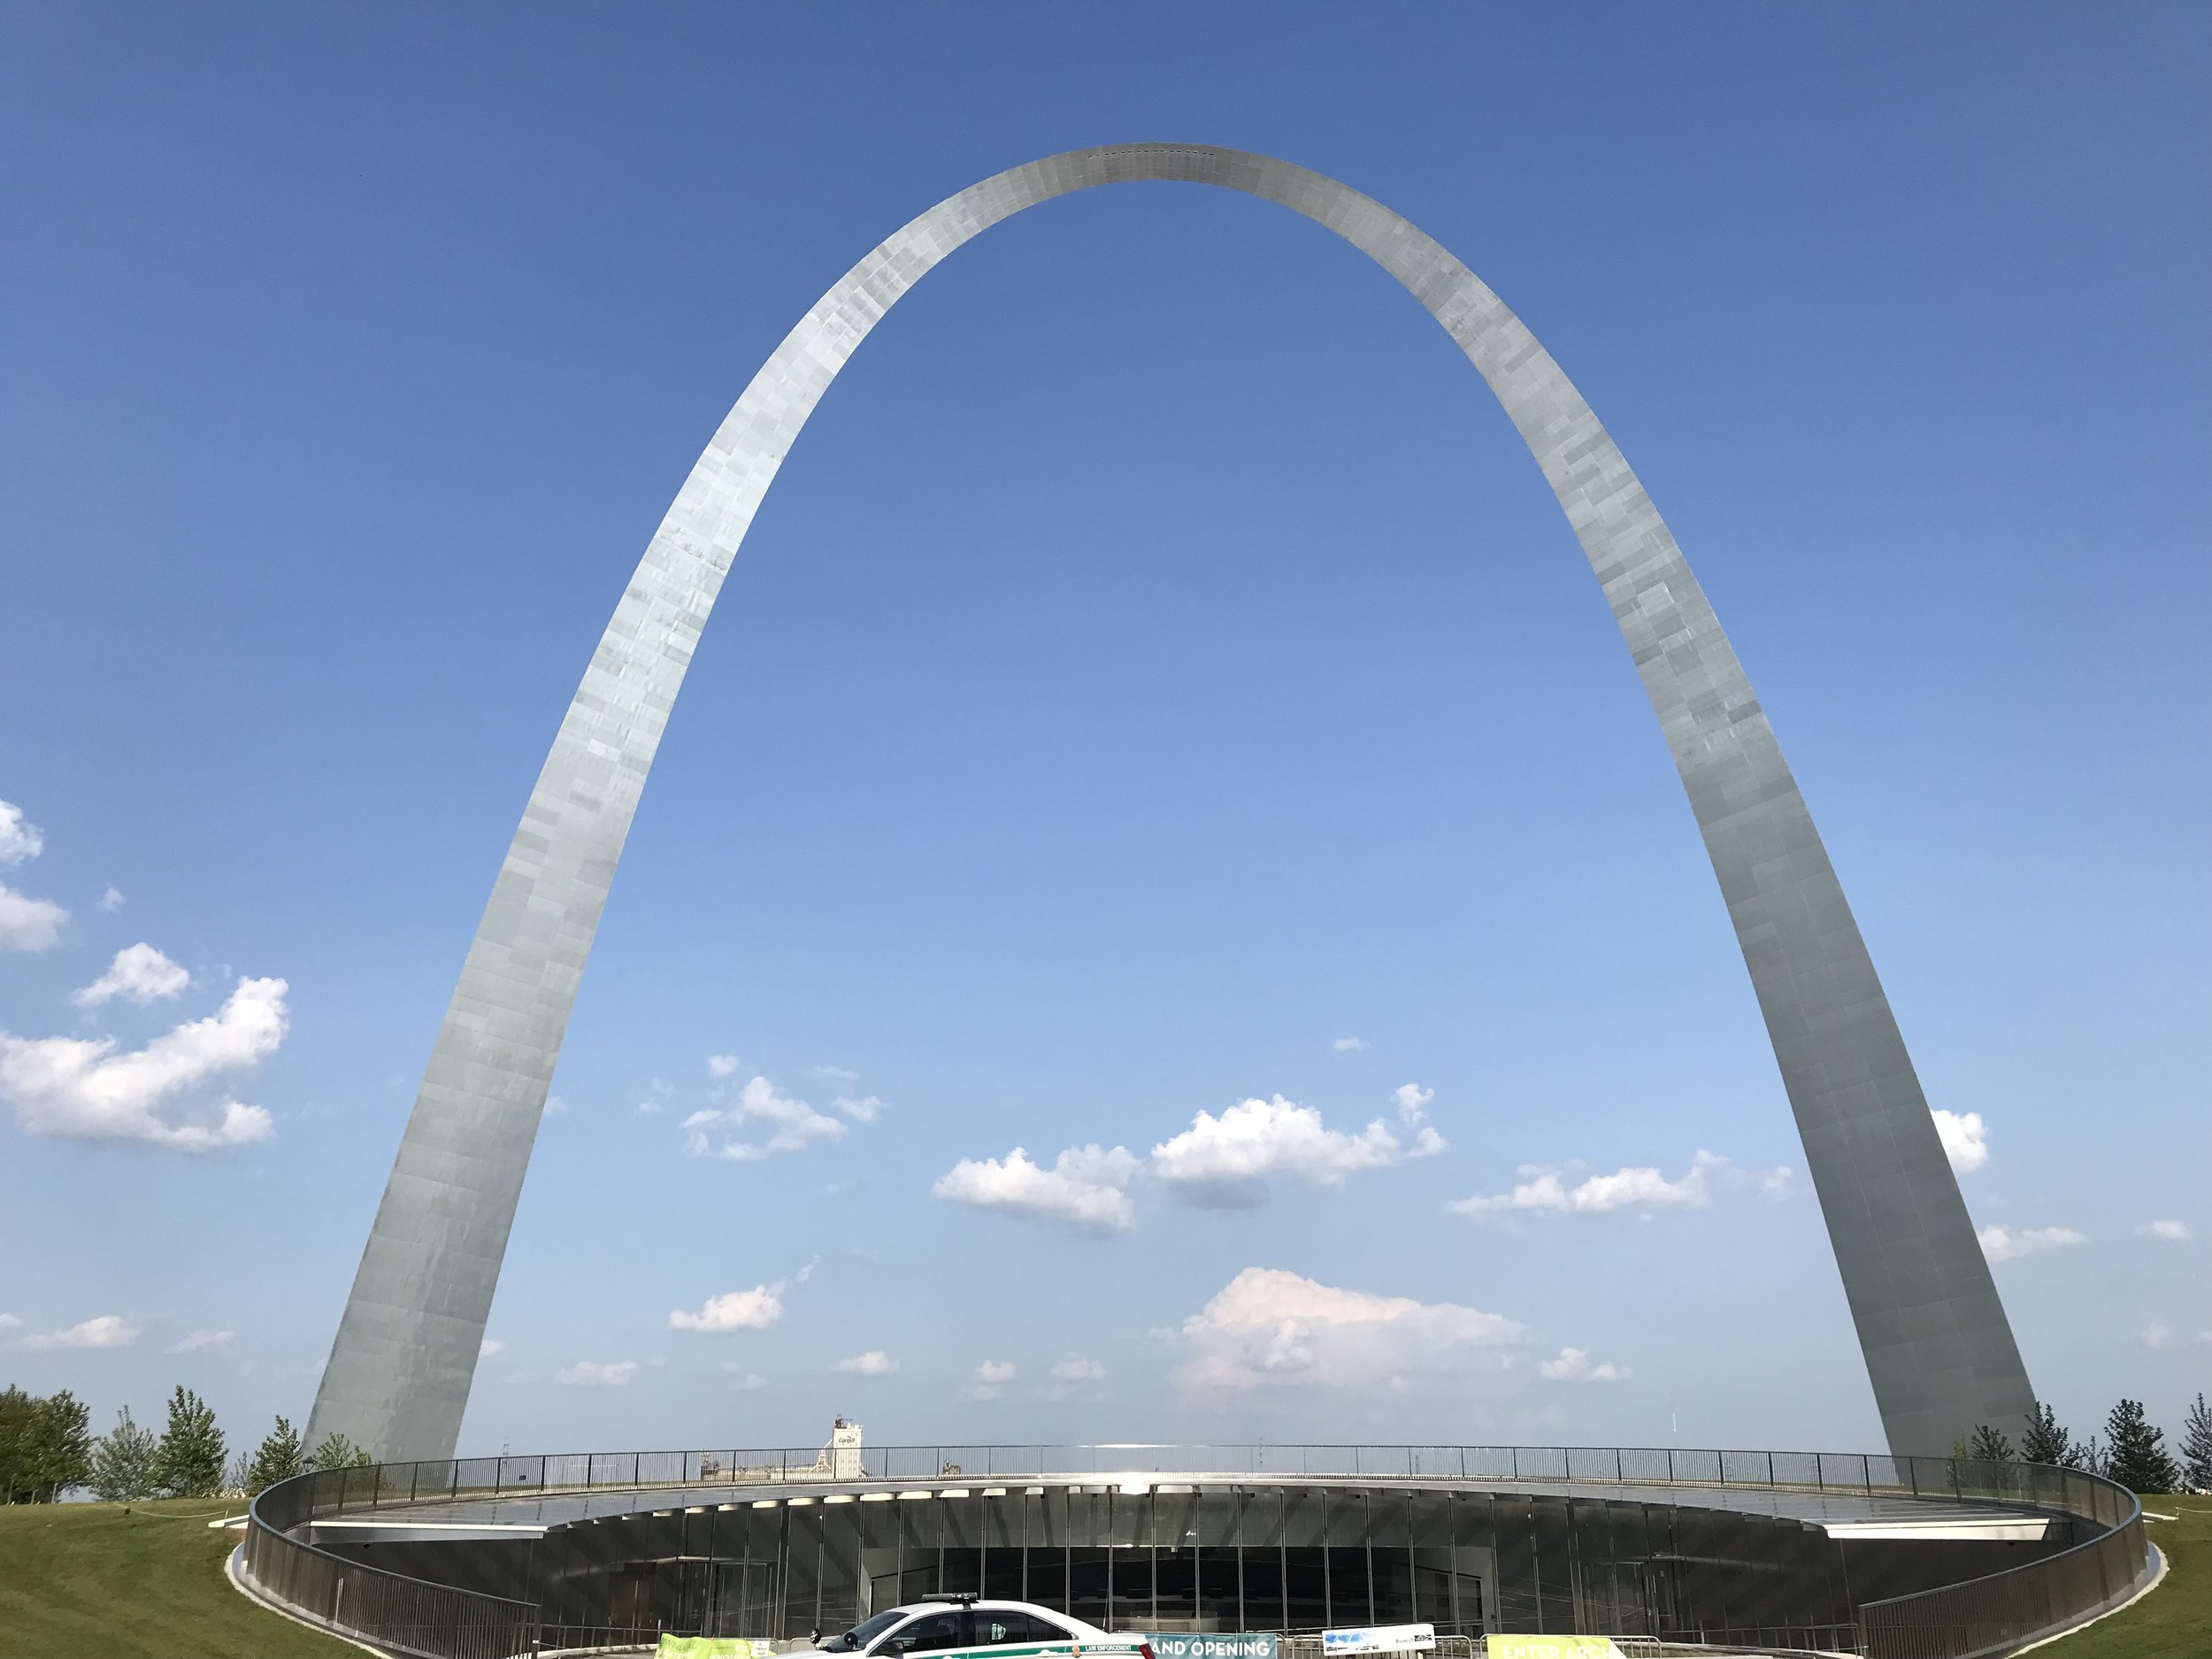 The Gateway to the West. Our hotel was right next to it, complete with a view of the Mississippi River.